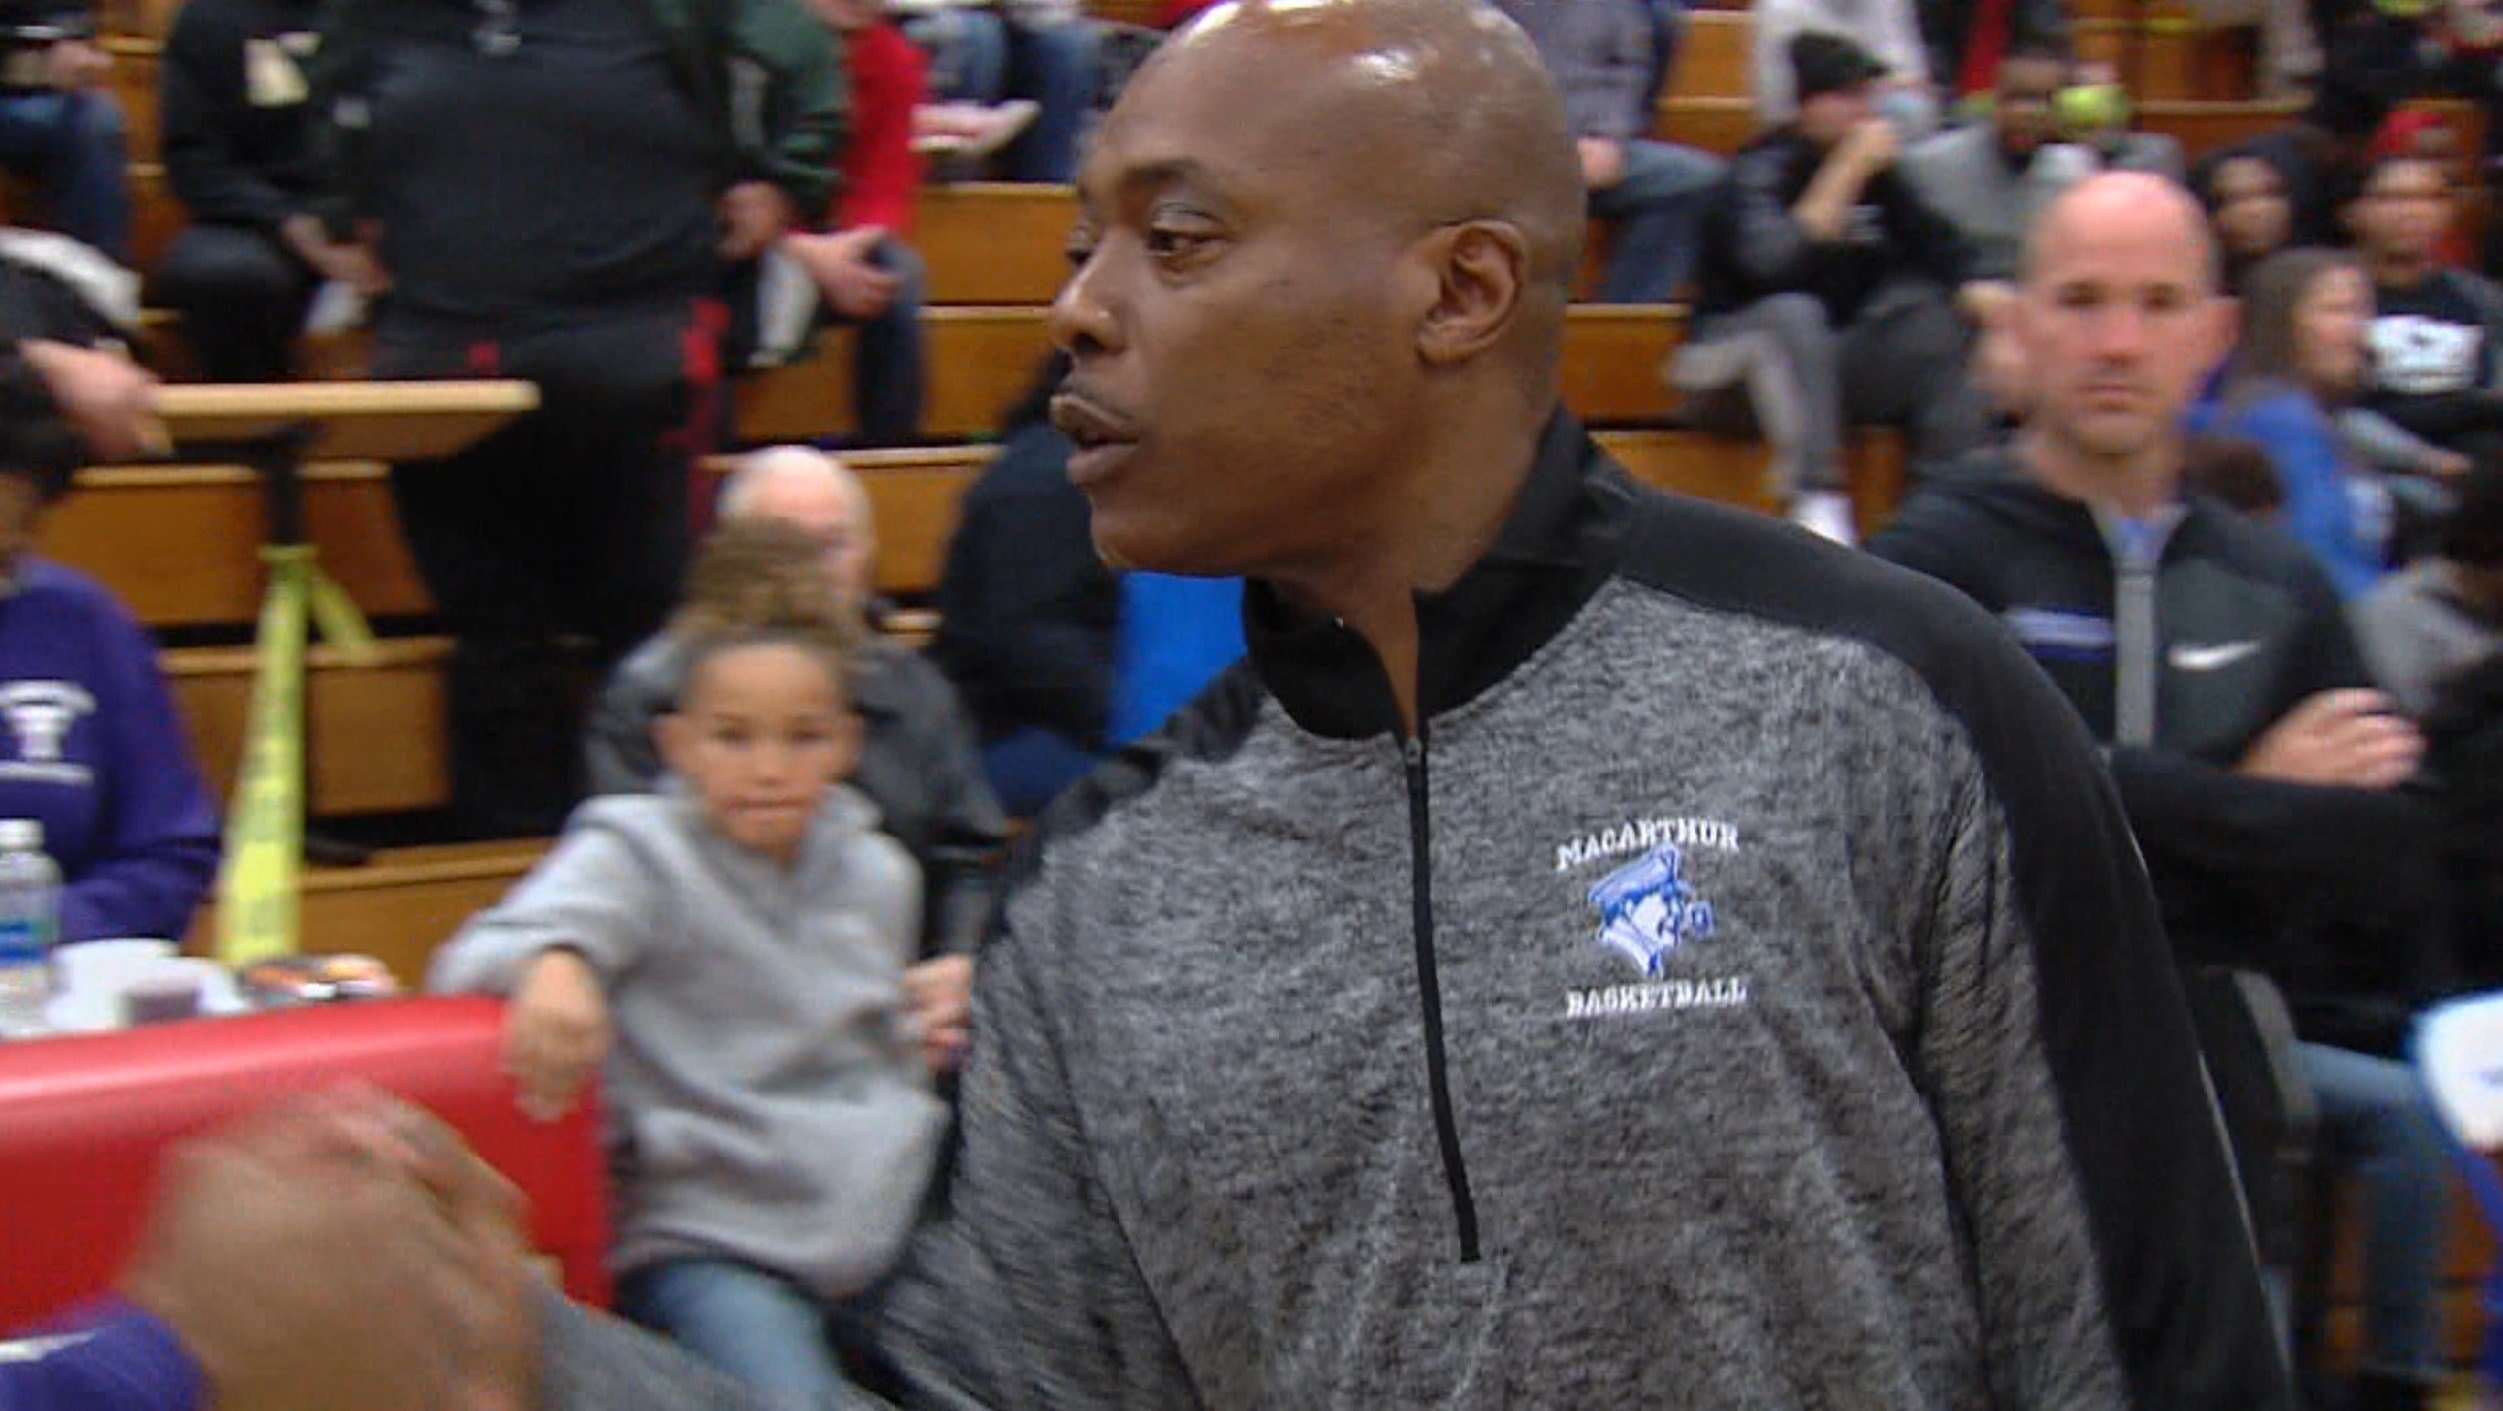 MacArthur head coach Ron Ingram was 58-31 in his first three years as head coach of the Generals.